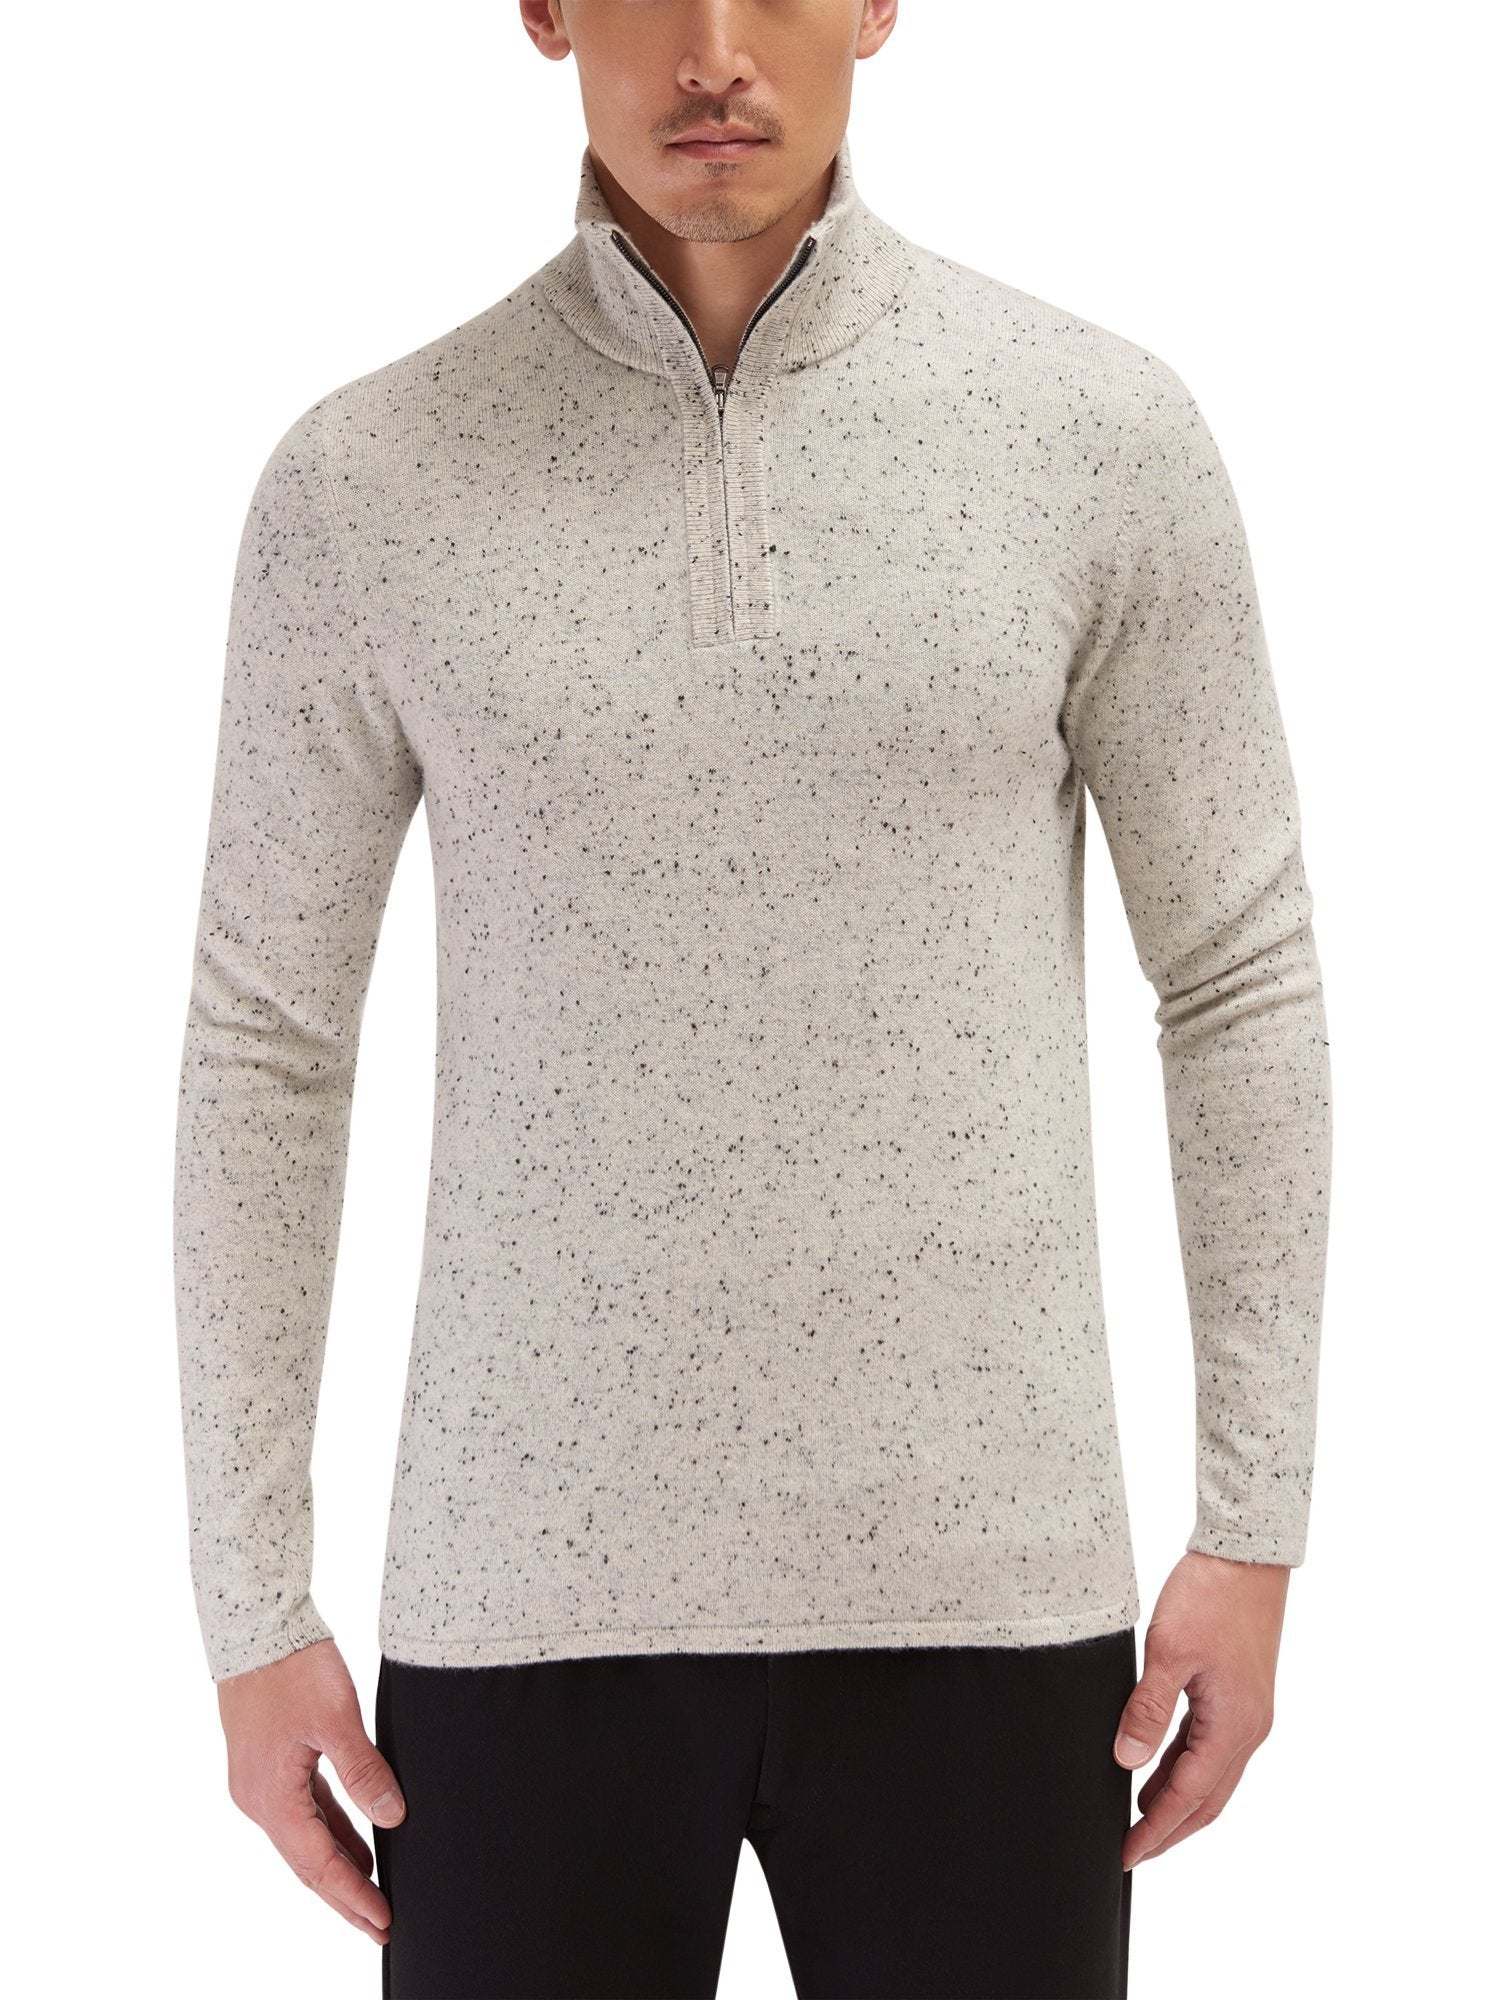 Bruce Pullover - EFM Menswear - Engineered For Motion